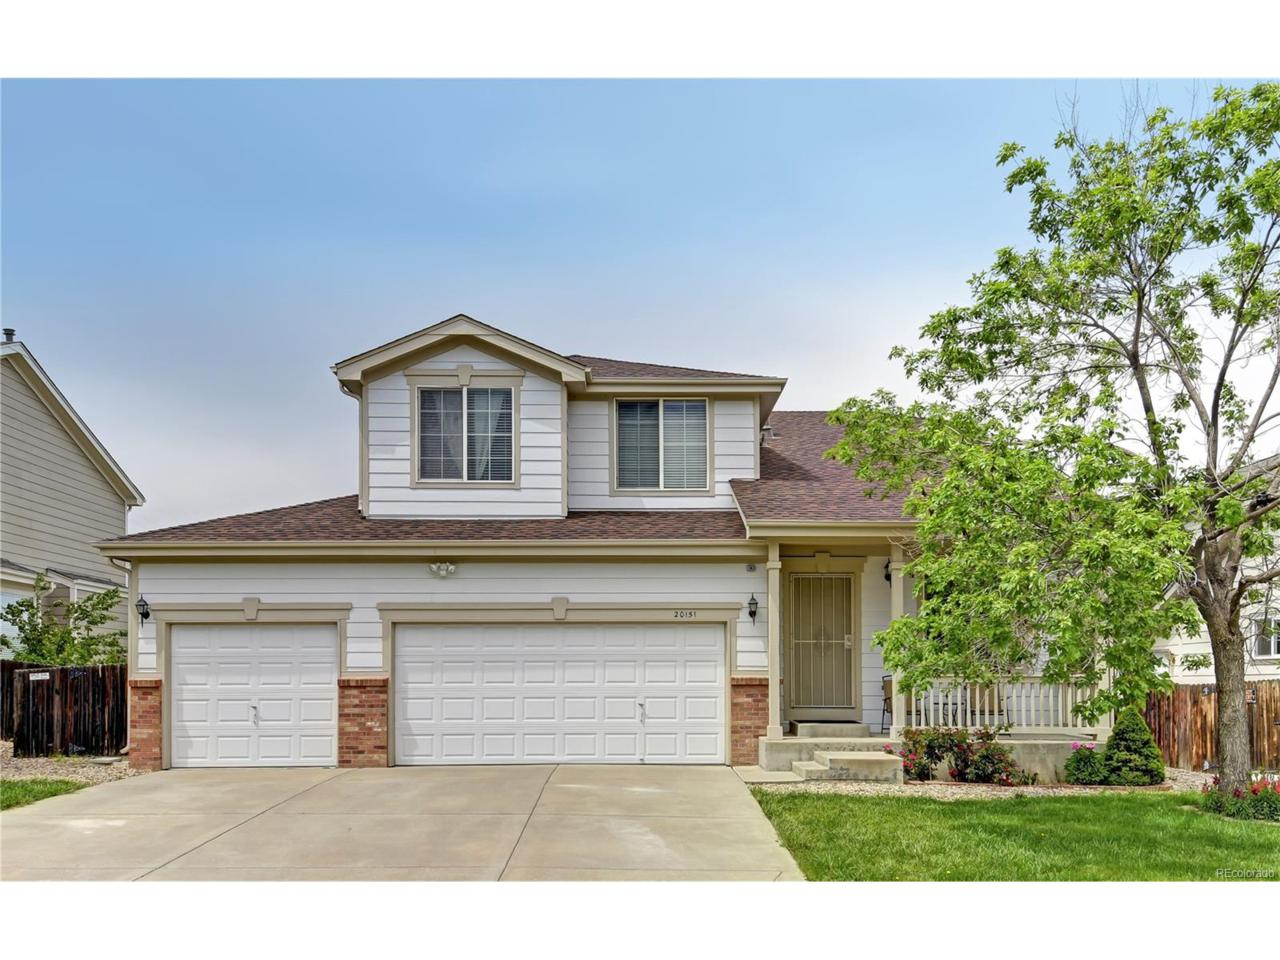 20151 E Radcliff Place, Aurora, CO 80015 (MLS #4974230) :: 8z Real Estate